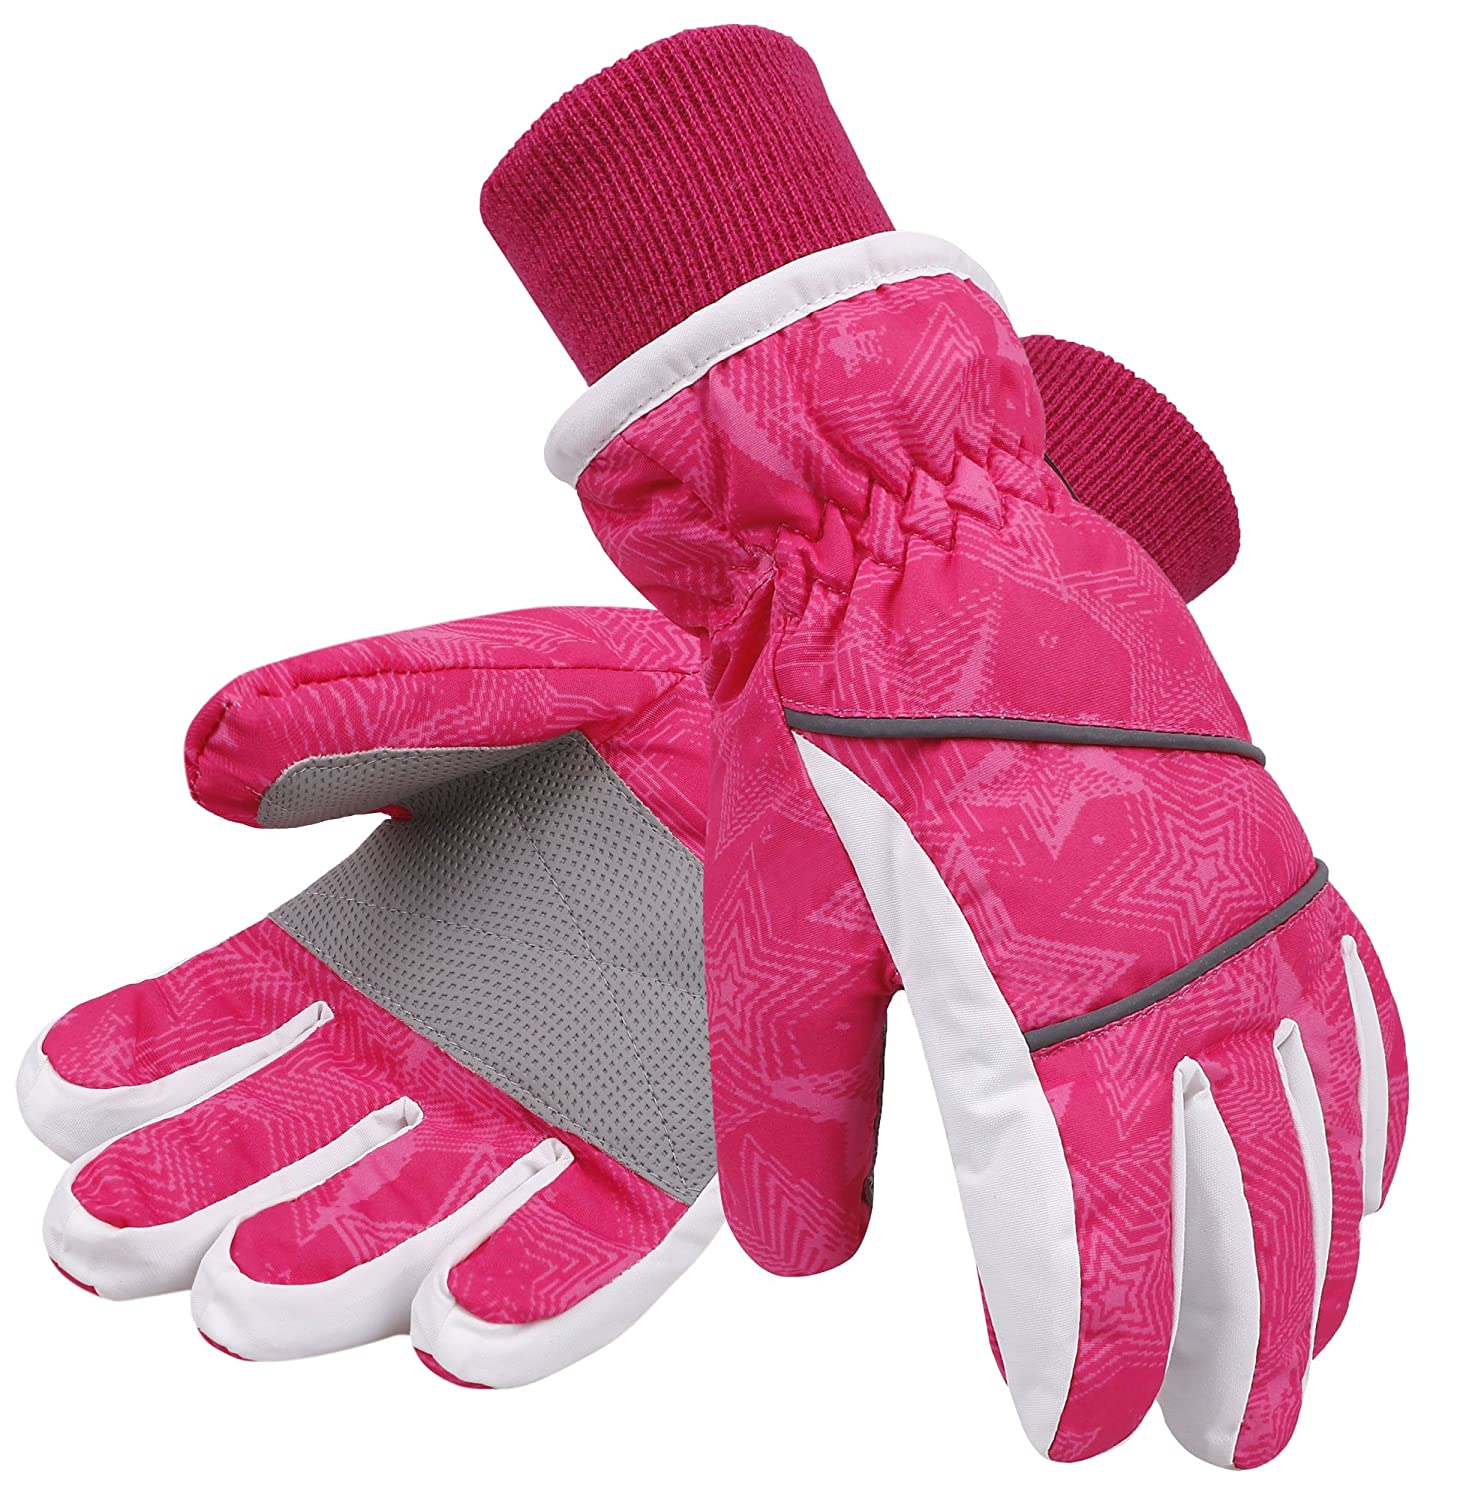 SimpliKids Girl's Waterproof Thinsulate Lined Winter Ski & Snowboard Gloves